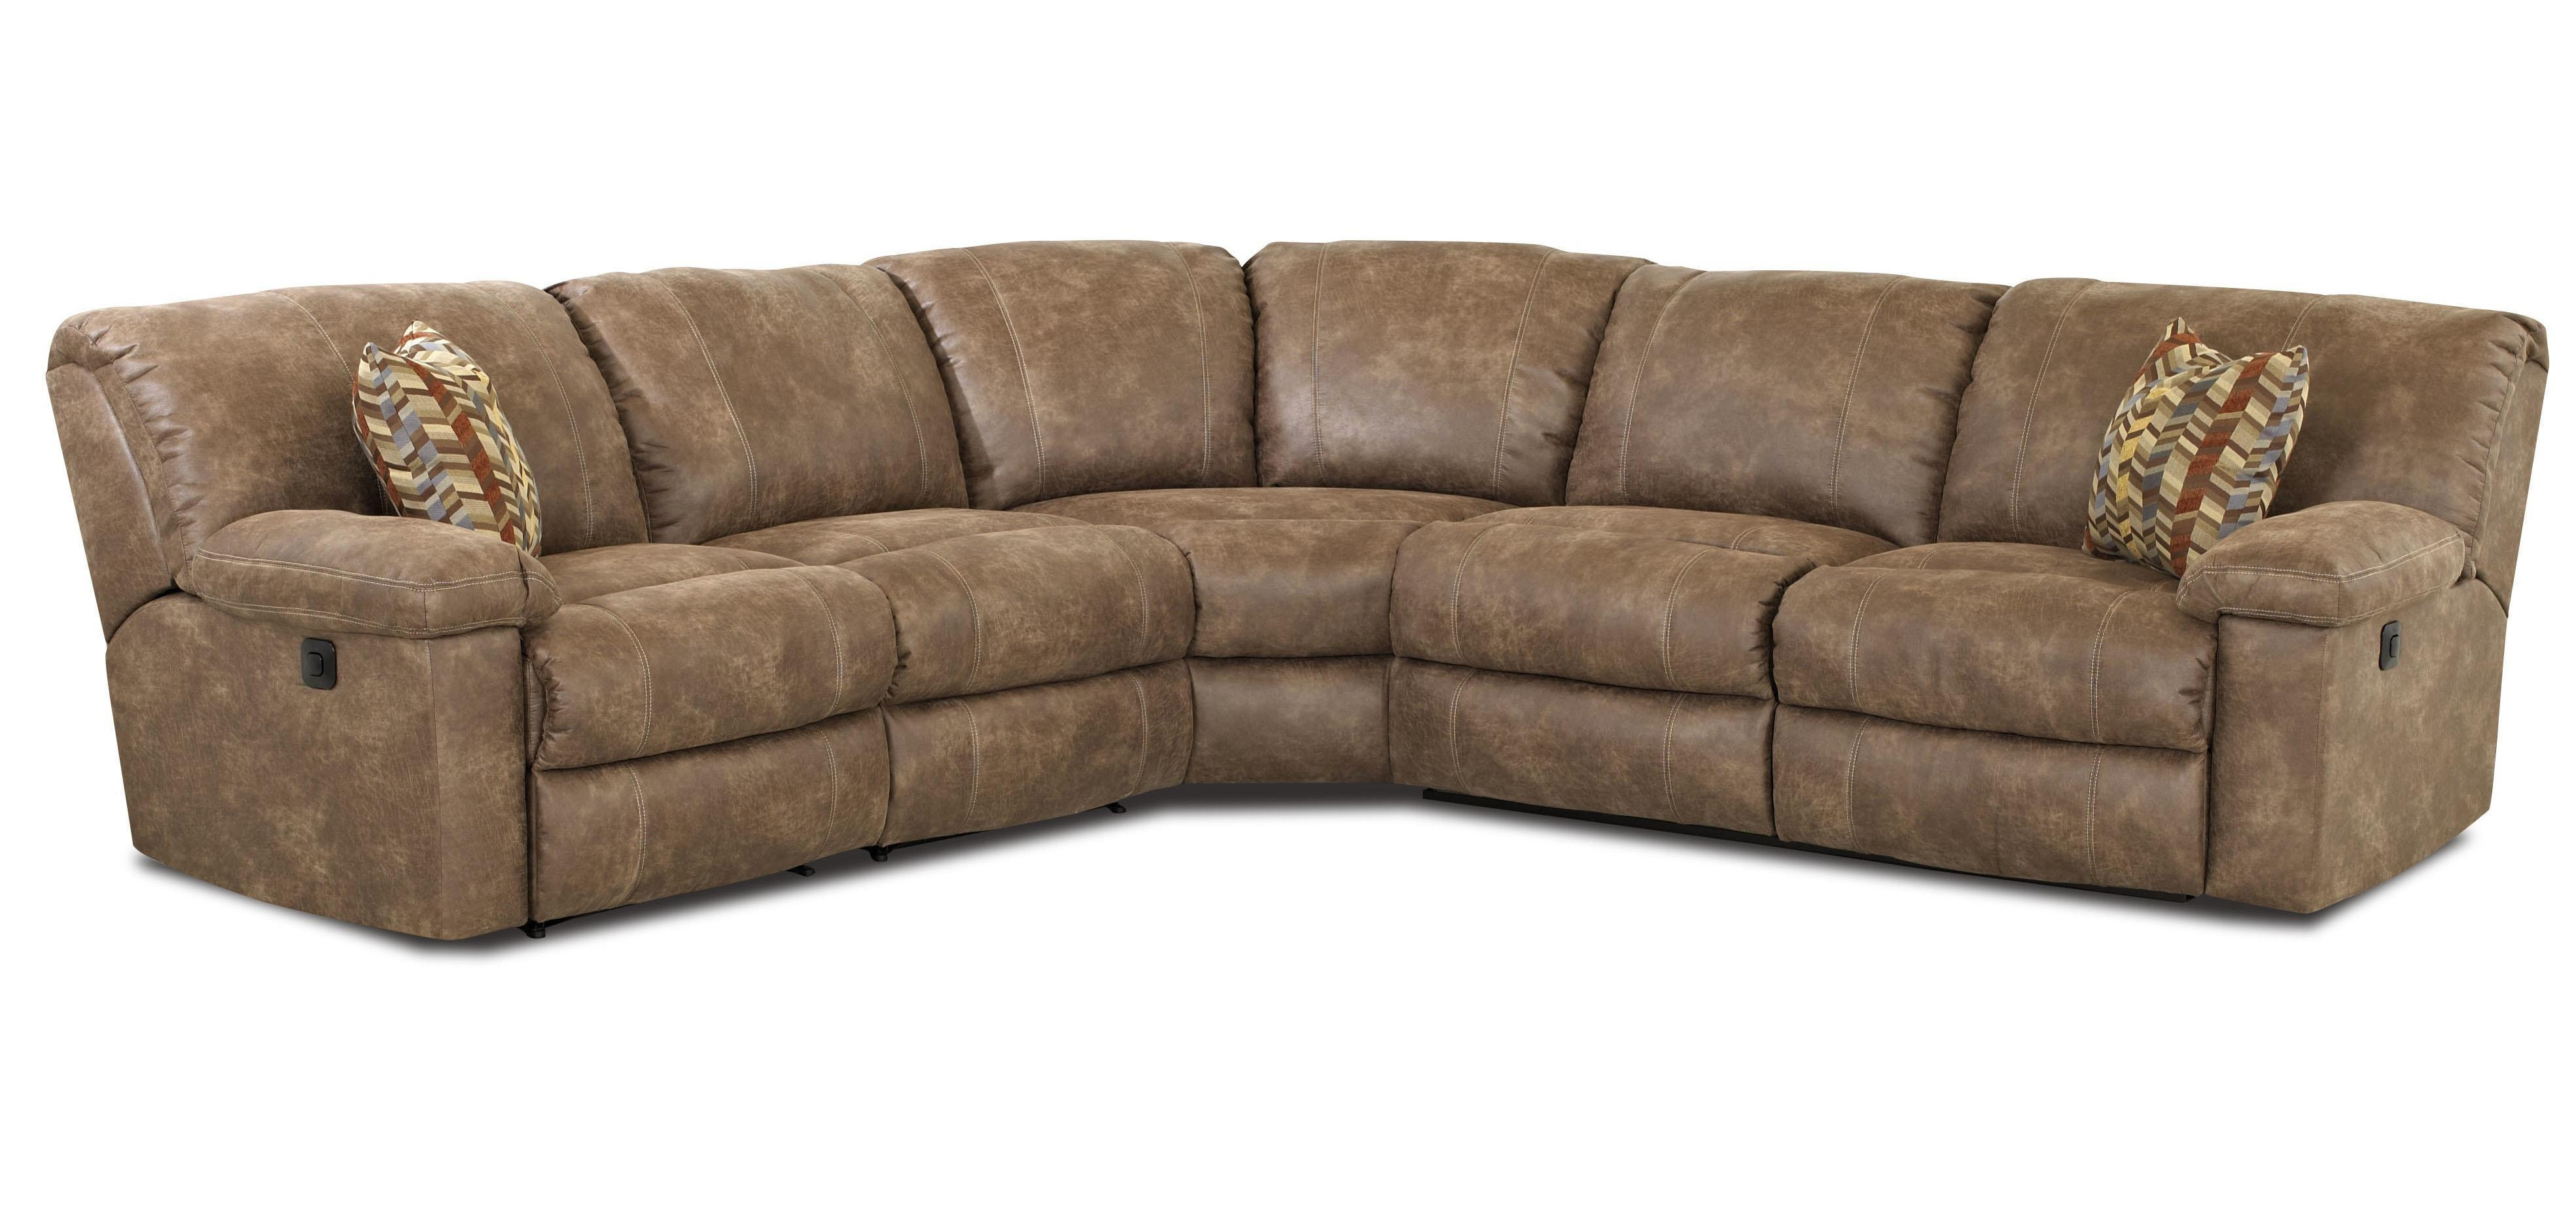 Sofas Center : Large Sectional Sofa With Chaise Costa Mesa Seven With Regard To Large Leather Sectional (Image 17 of 20)